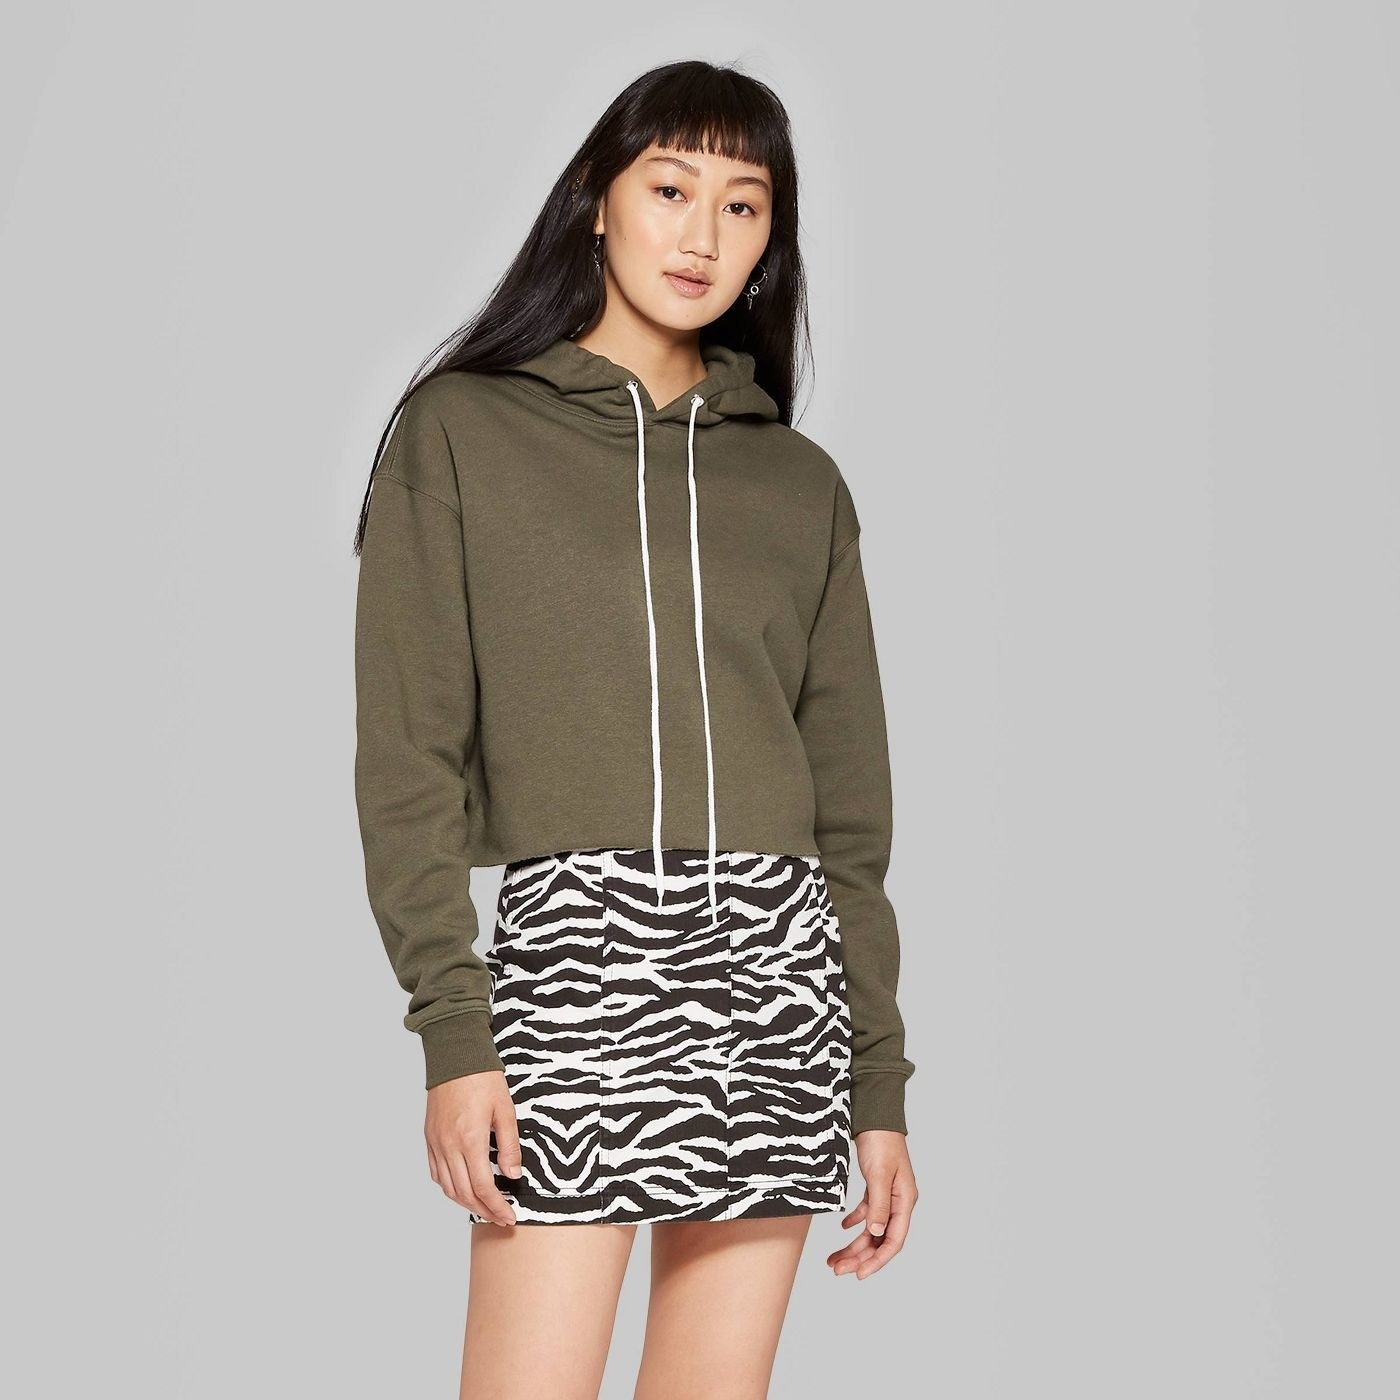 Model in green cropped hoodie and zebra print skirt